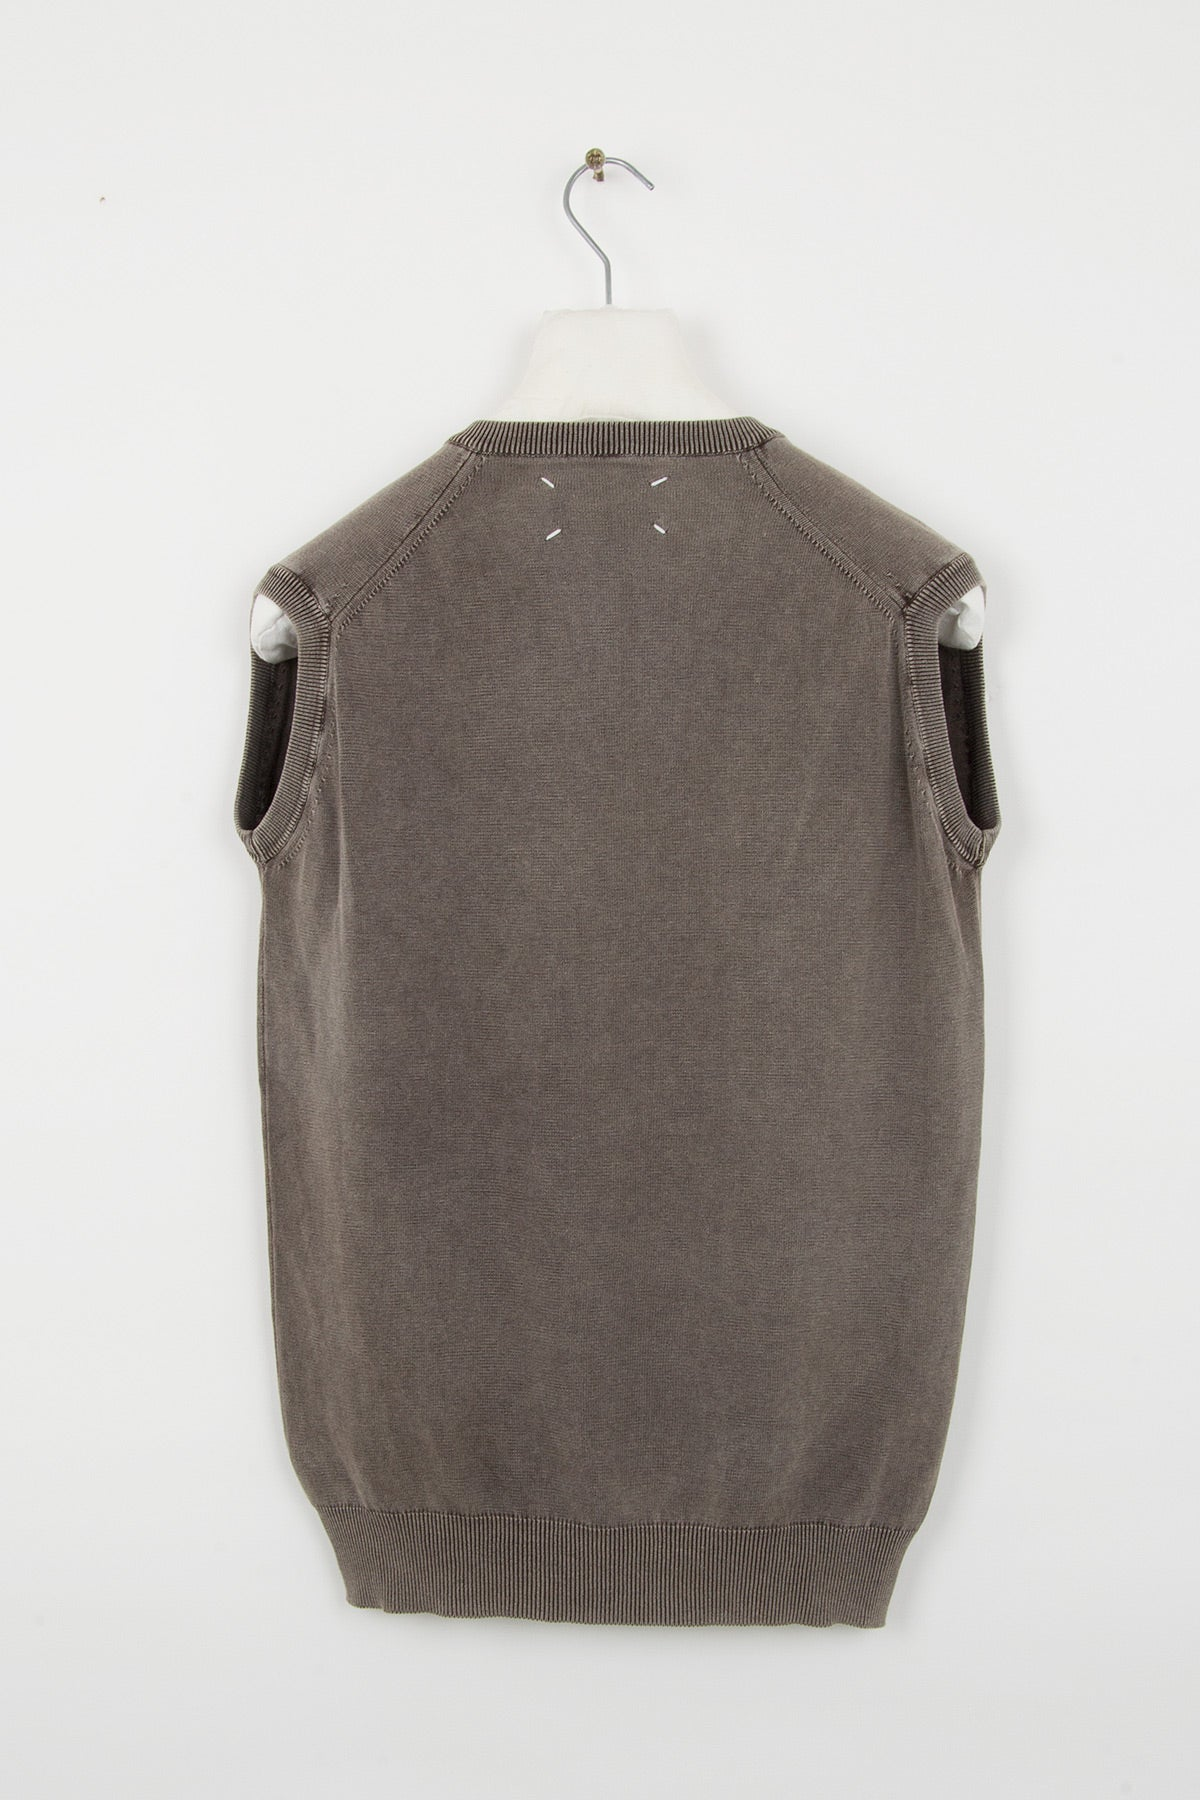 1999 S/S STONE WASHED VEST BY MISS DEANNA